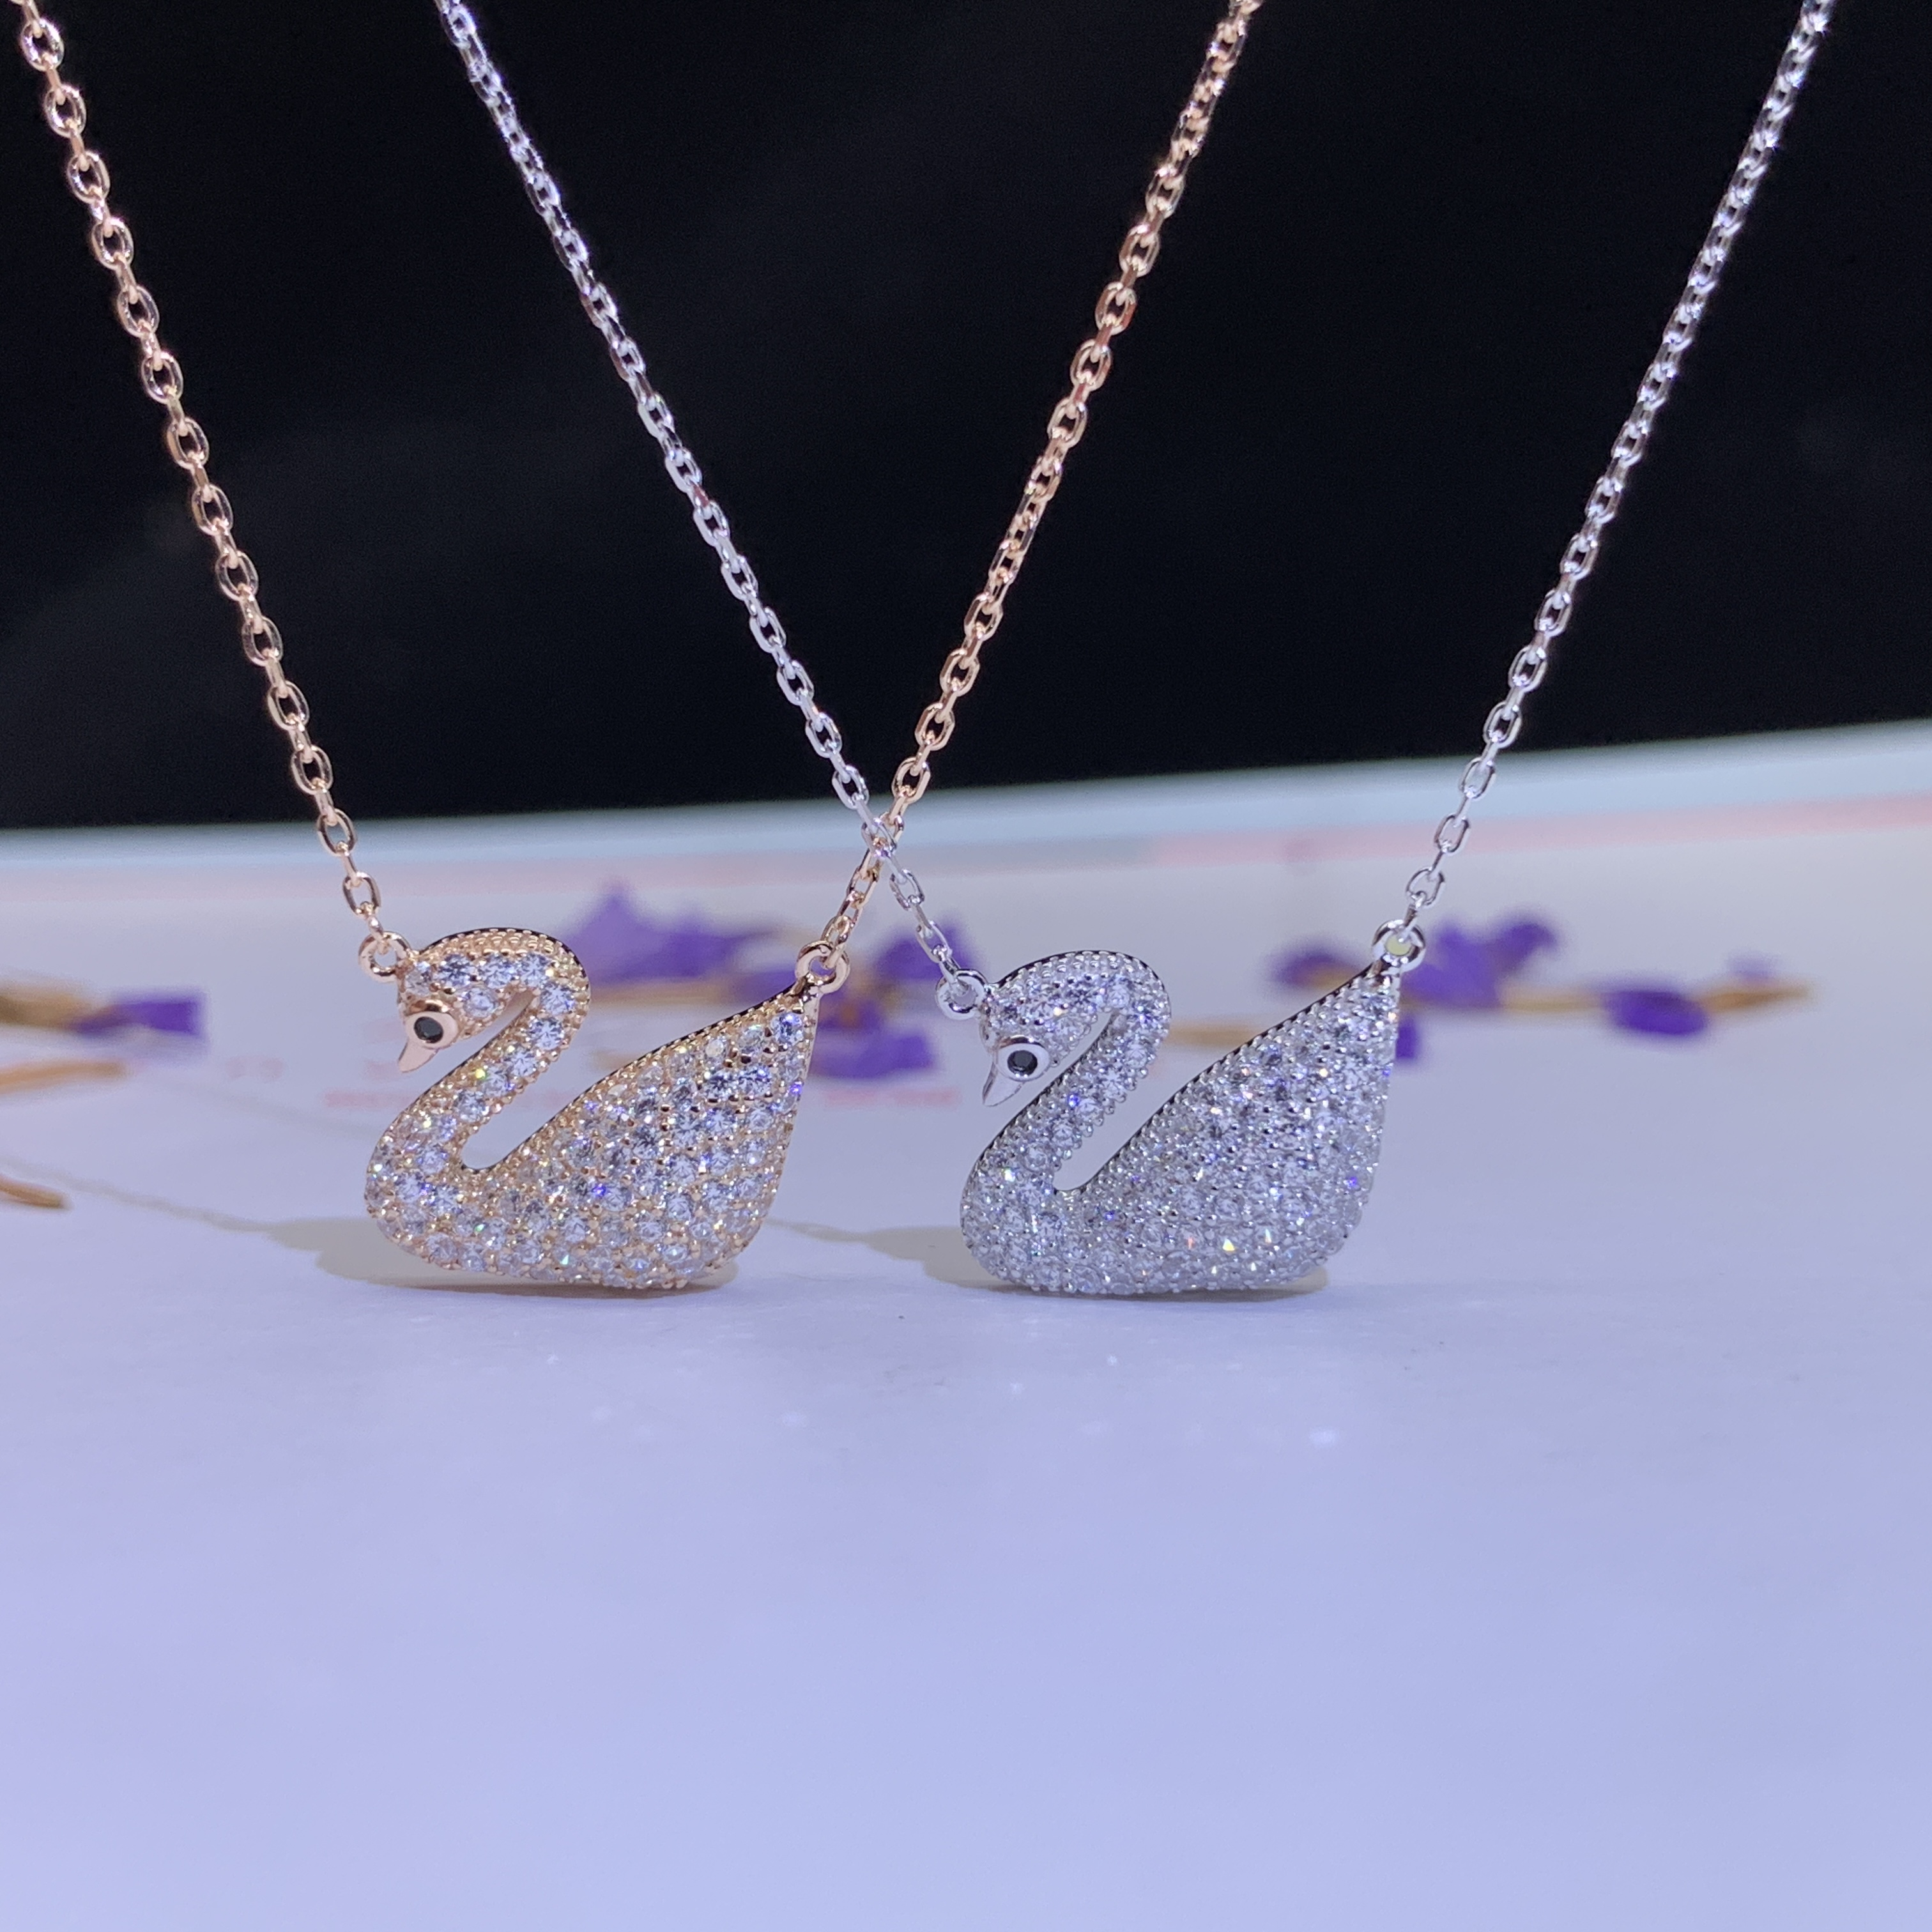 New pure silver swan necklace, fashionable jewelry, female clavicle chain, best friend, same female silver jewelry, simple style, small and fresh